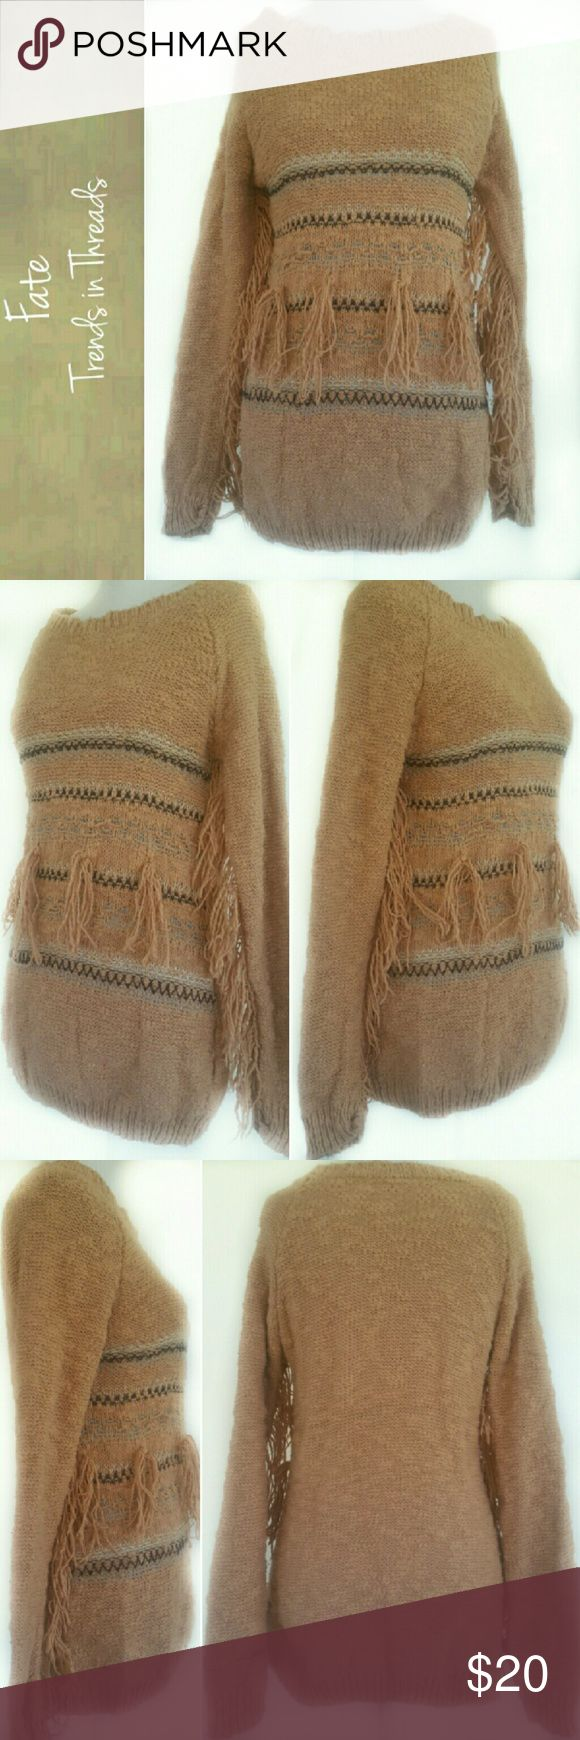 Fate Fringe Sweater, Medium Fate Fringed Sweater, Women's Size Medium M, pre-owned.  80 percent cotton 20 percent acrylic, hand wash or dry clean  Sepia beige in color with darker brown woven stripe accents, crew neck, long fringed sleeves with fringe accents on front of sweater, medium knit. fate Sweaters